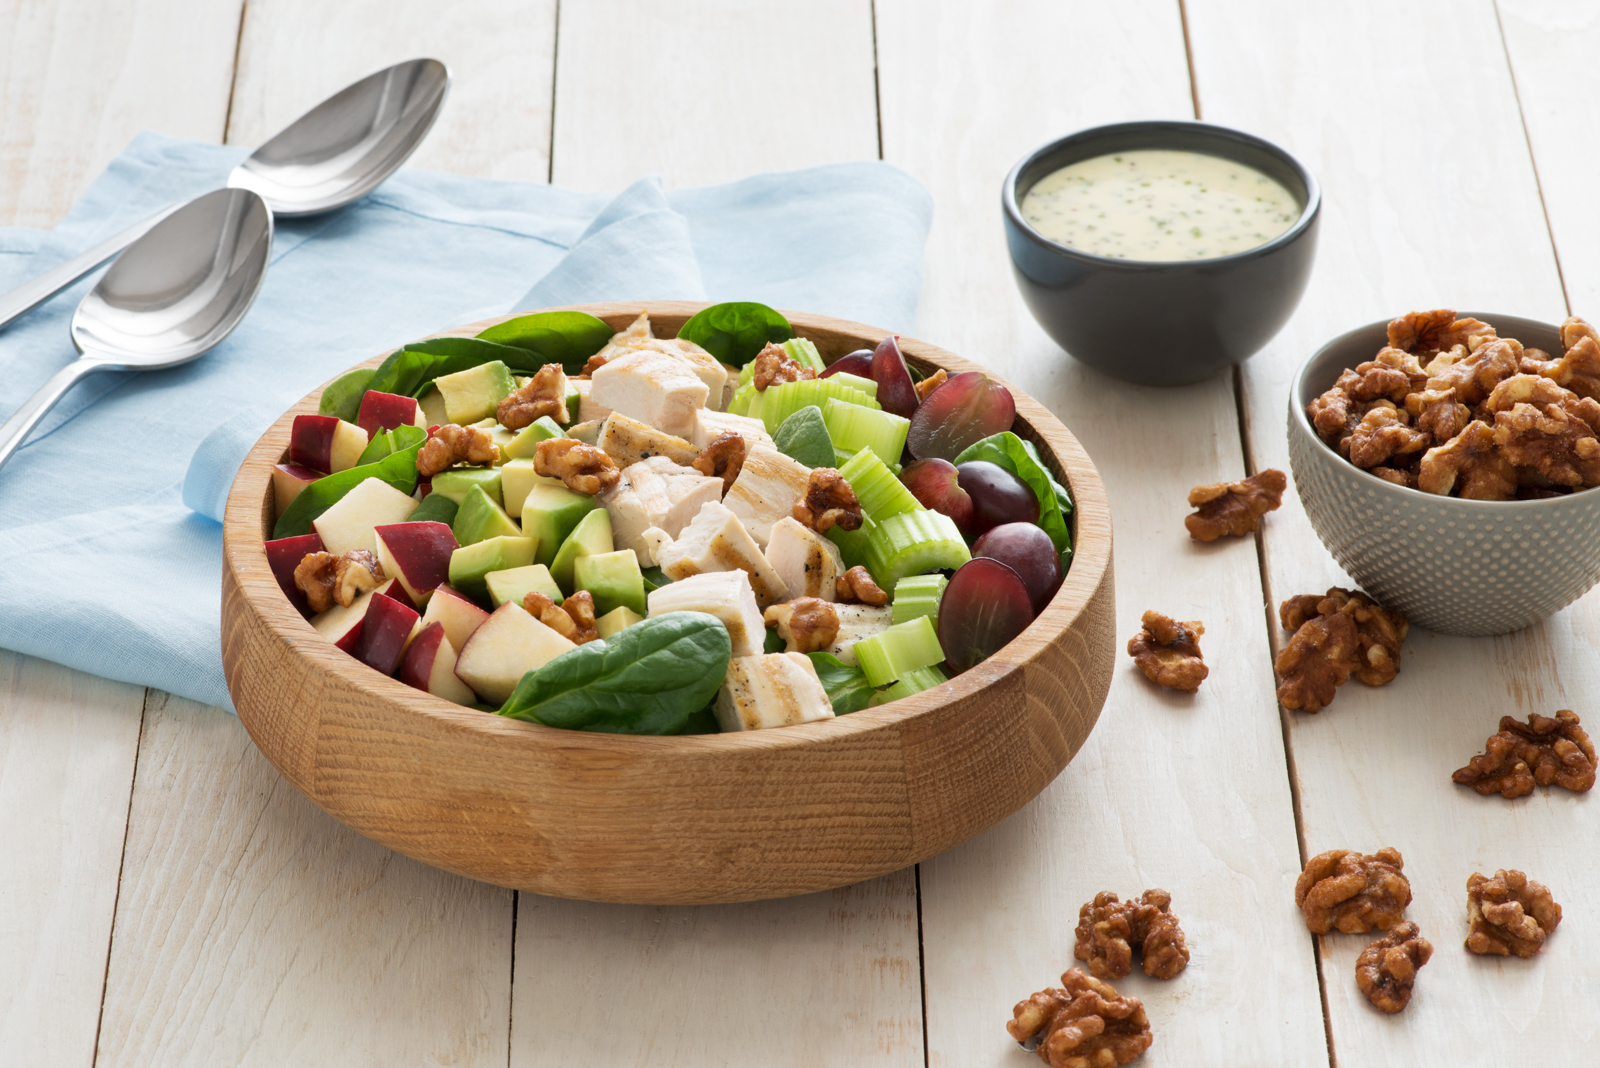 Grilled-Chicken-Salad-with-Candied-Walnuts.jpg